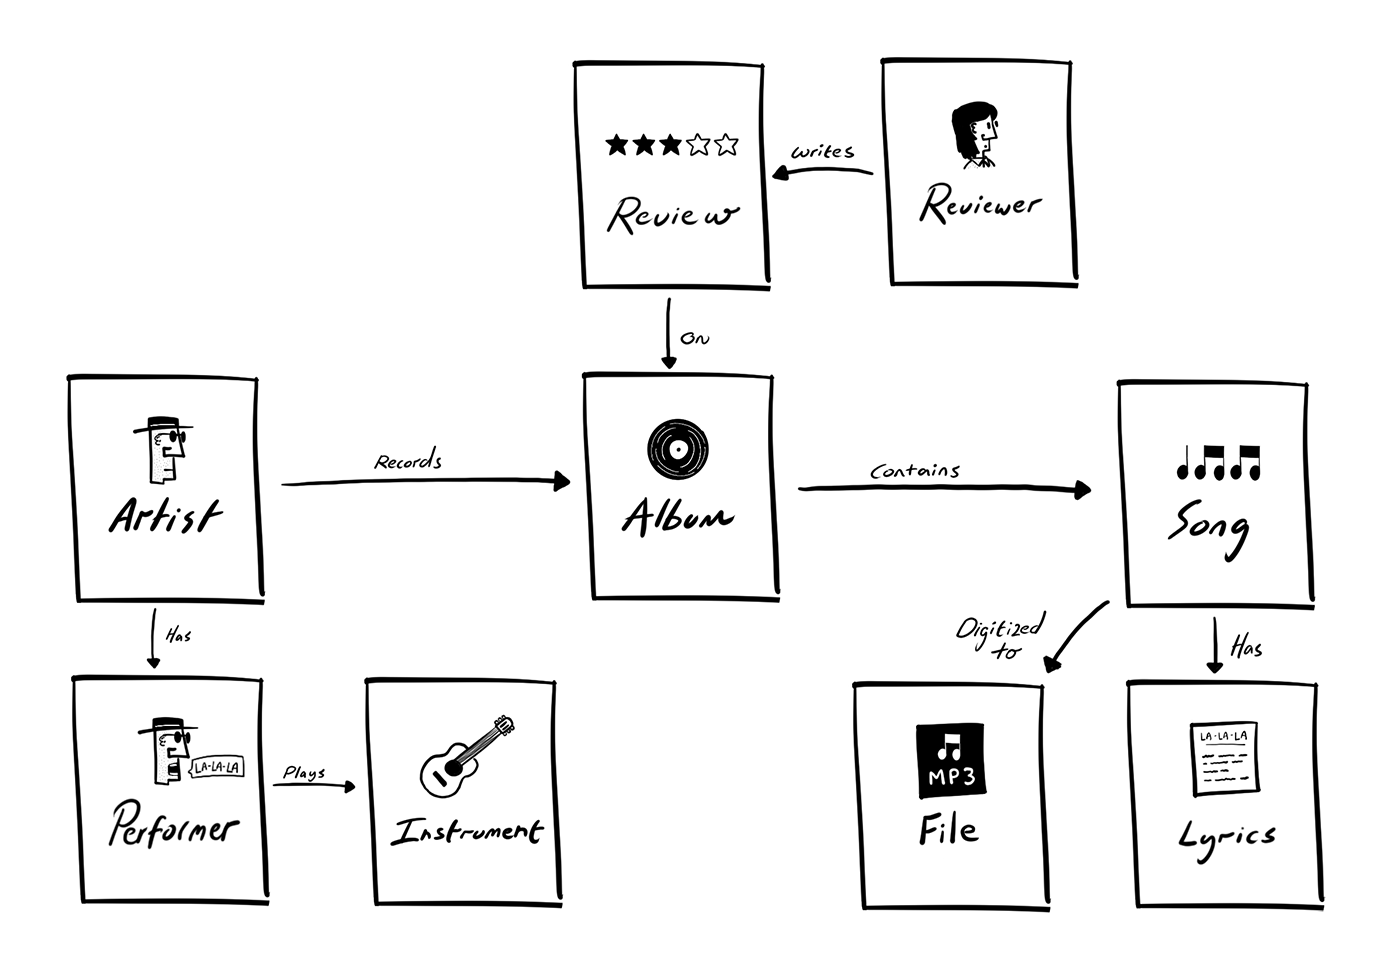 Doodle shows a complex model with many content types and a lot or relationships.